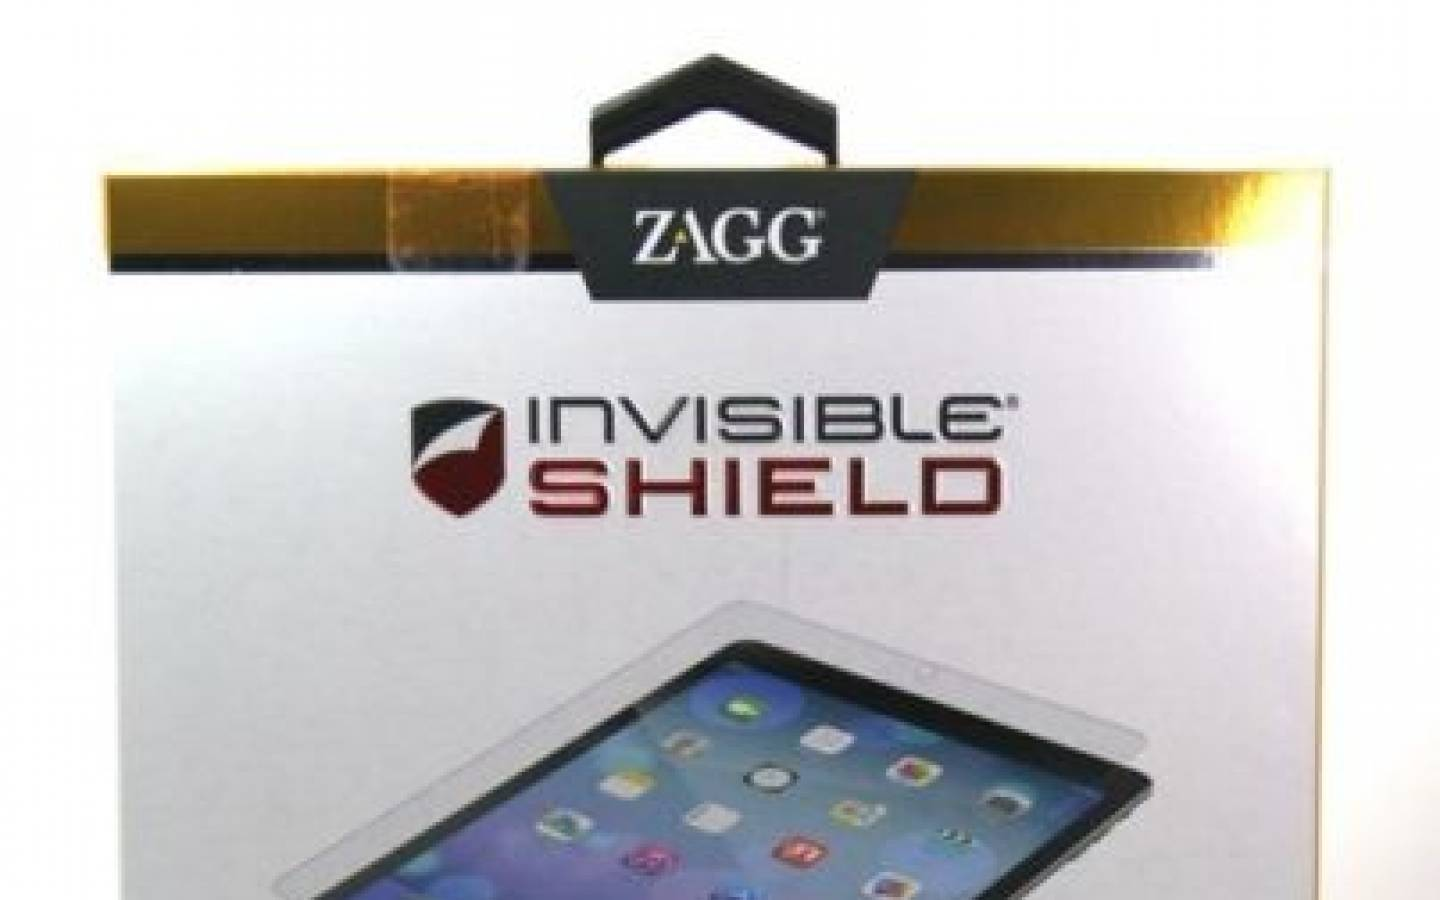 ZAGG® Protectores de pantalla invisibleSHIELD™ para  Apple iPad Air 5 5th Gen Frontal